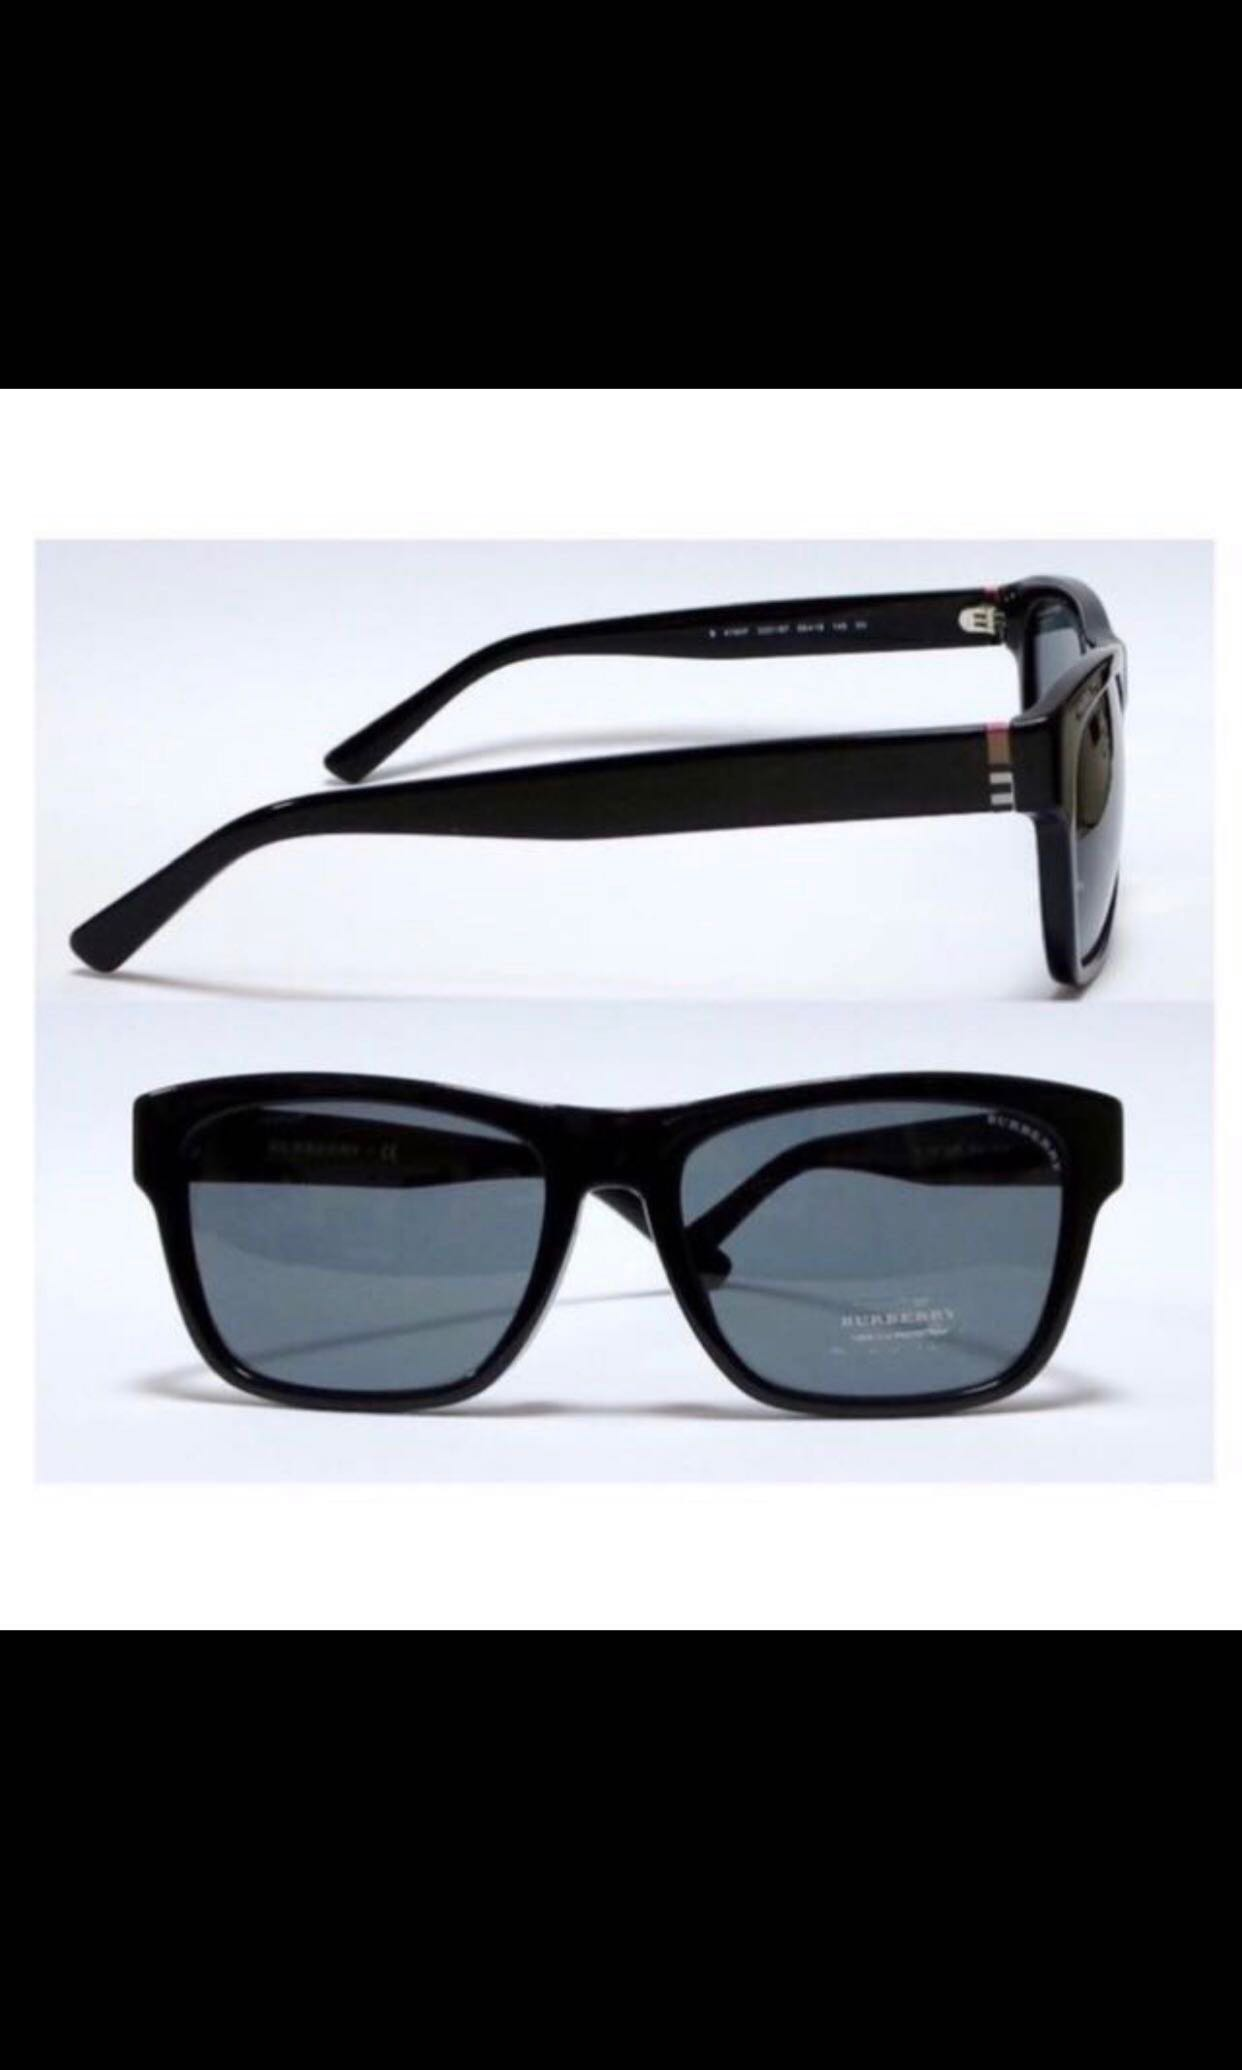 Burberry Sunglasses f2c328bf608ae